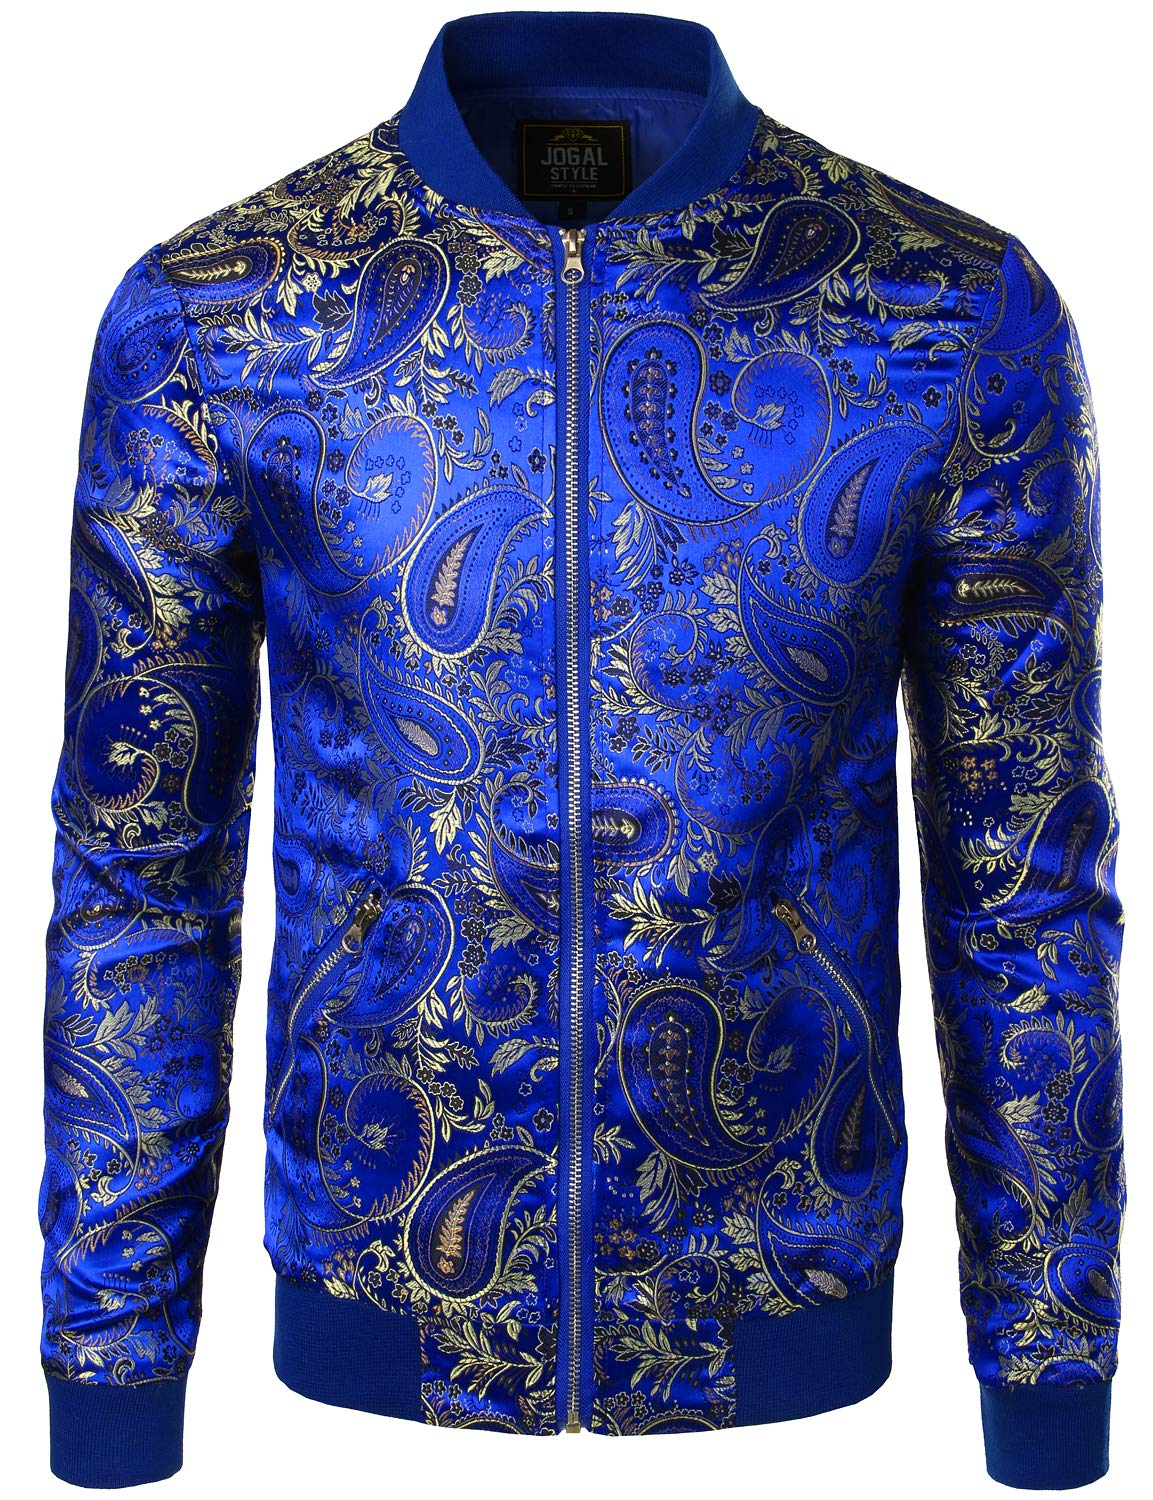 JOGAL Men's Luxury Paisley Embroidered Satin Bomber Jacket Coat Medium RoyalBlue by JOGAL